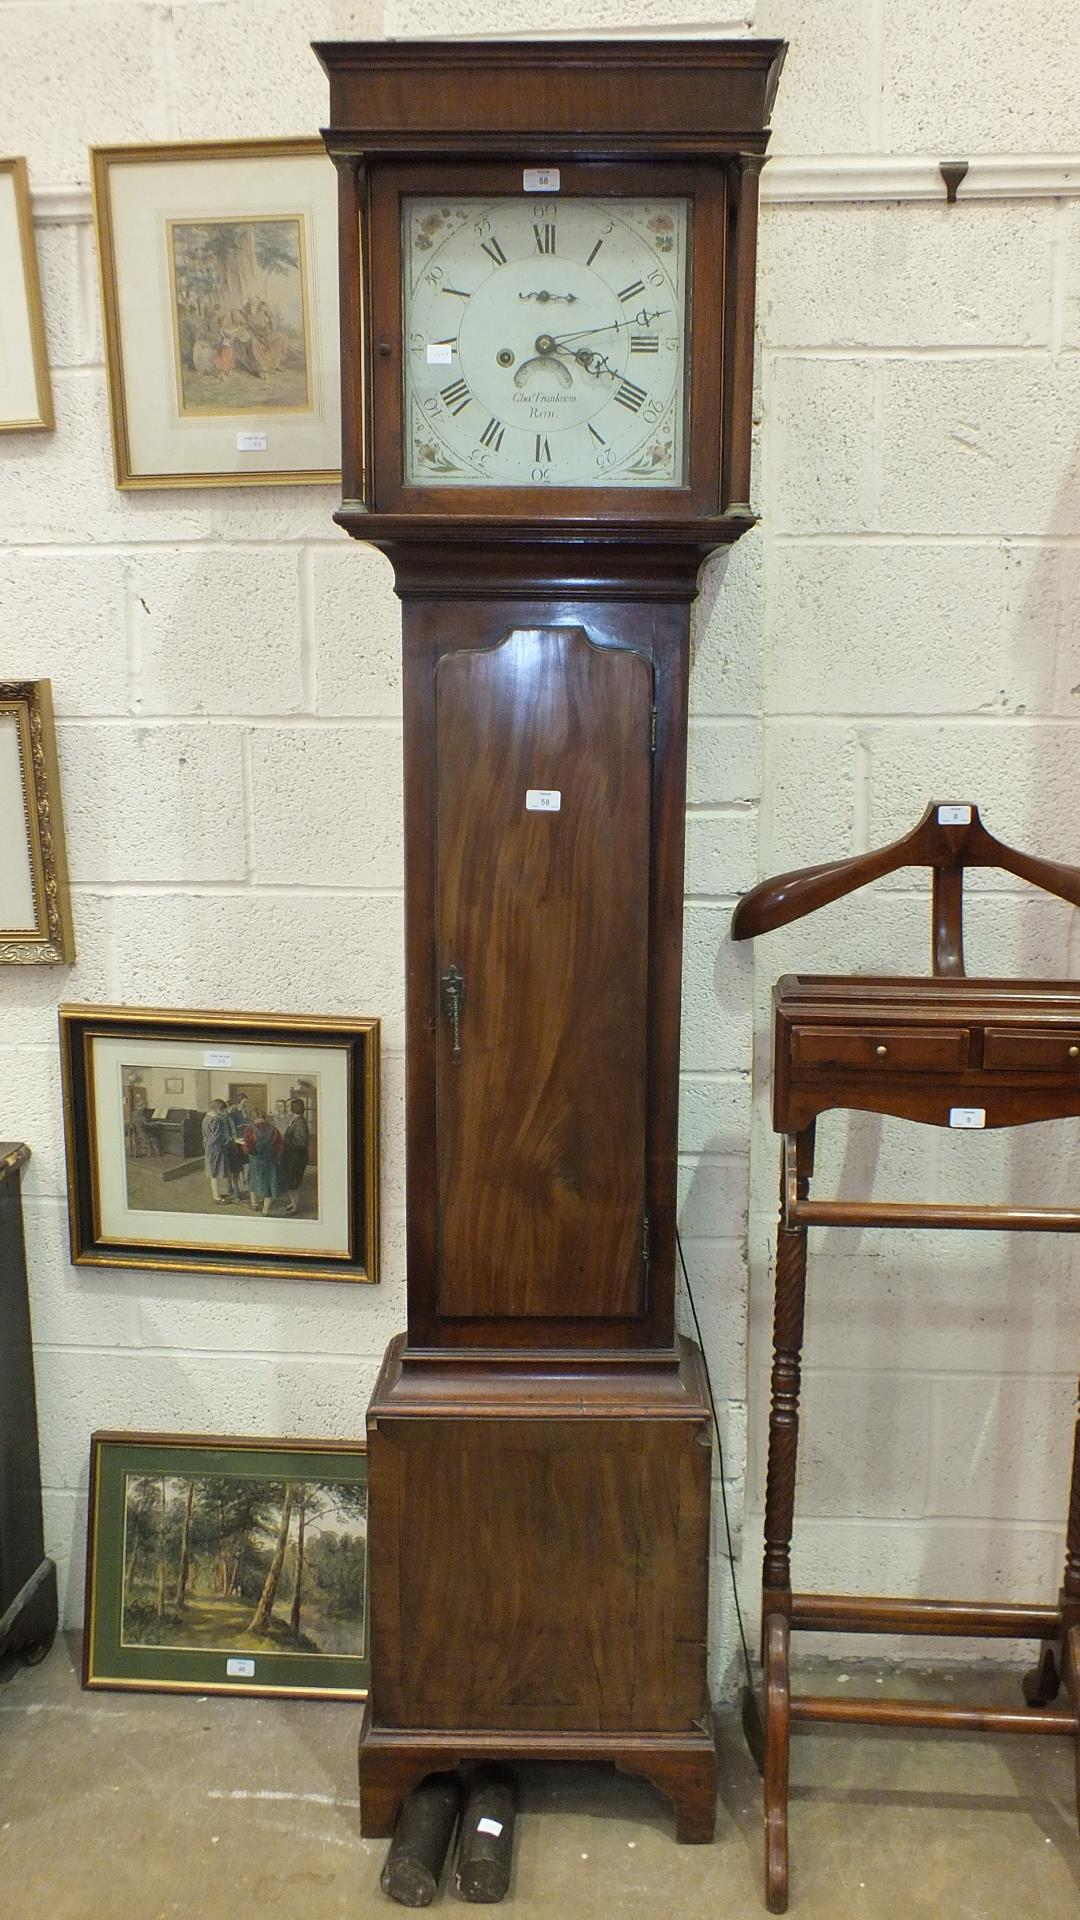 Lot 58 - A 19th century mahogany long case clock, the painted dial with calendar aperture and seconds